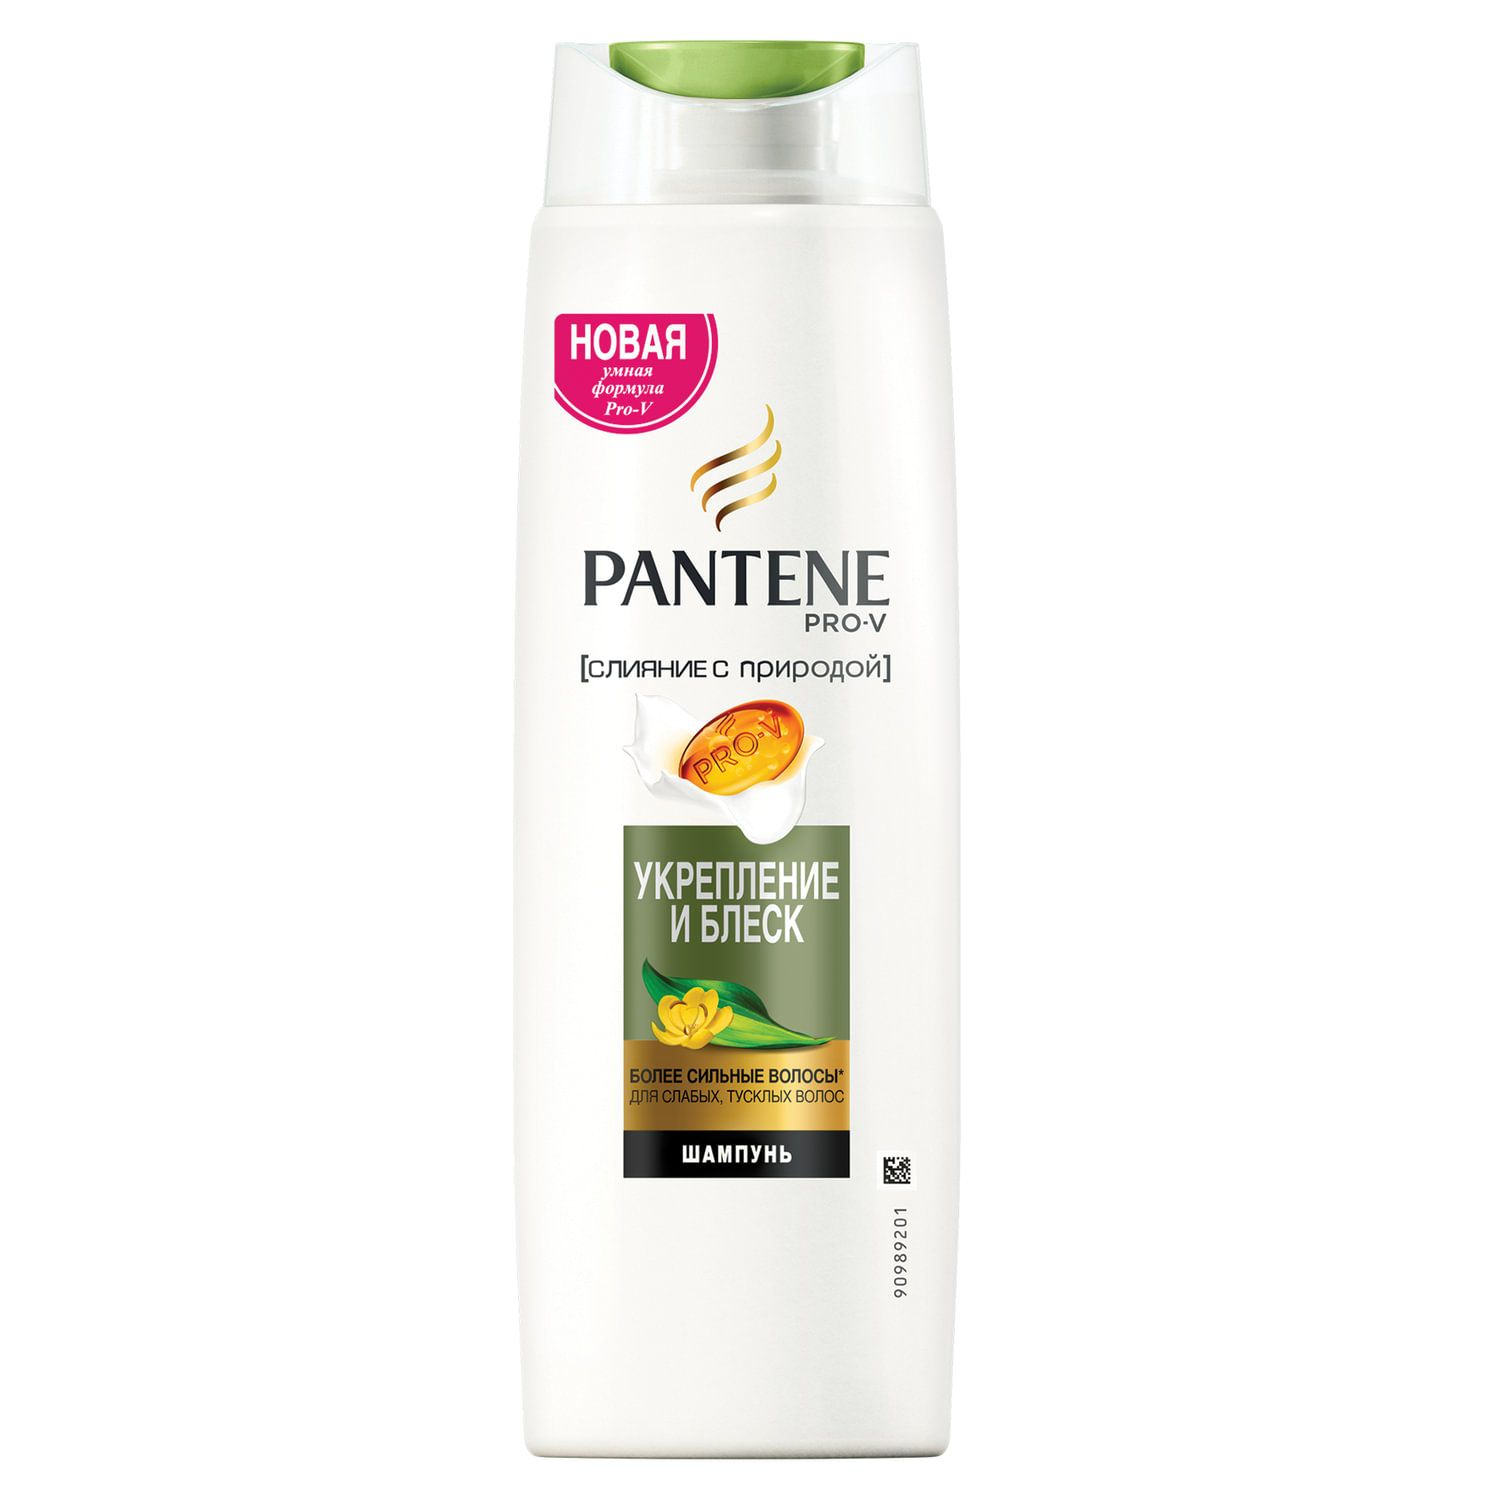 "Shampoo 400 ml, PANTENE ""Merging with nature"", strengthening and shine"